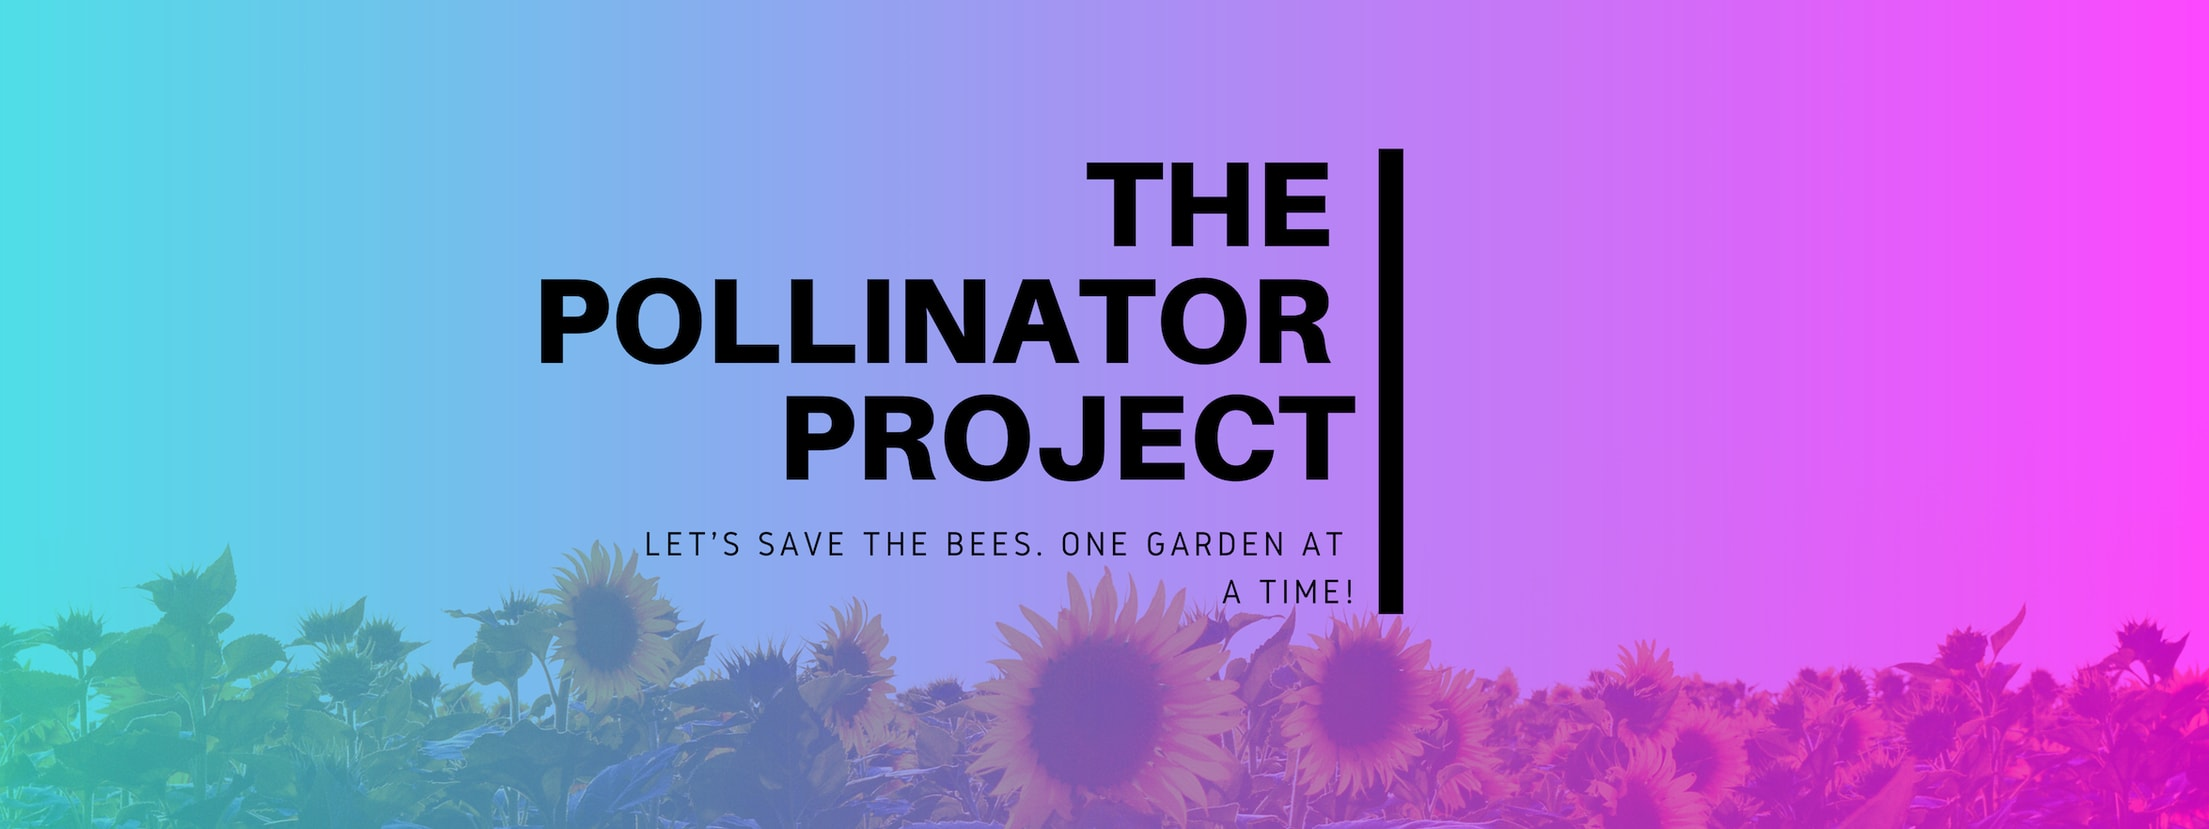 The Pollinator Project Banner